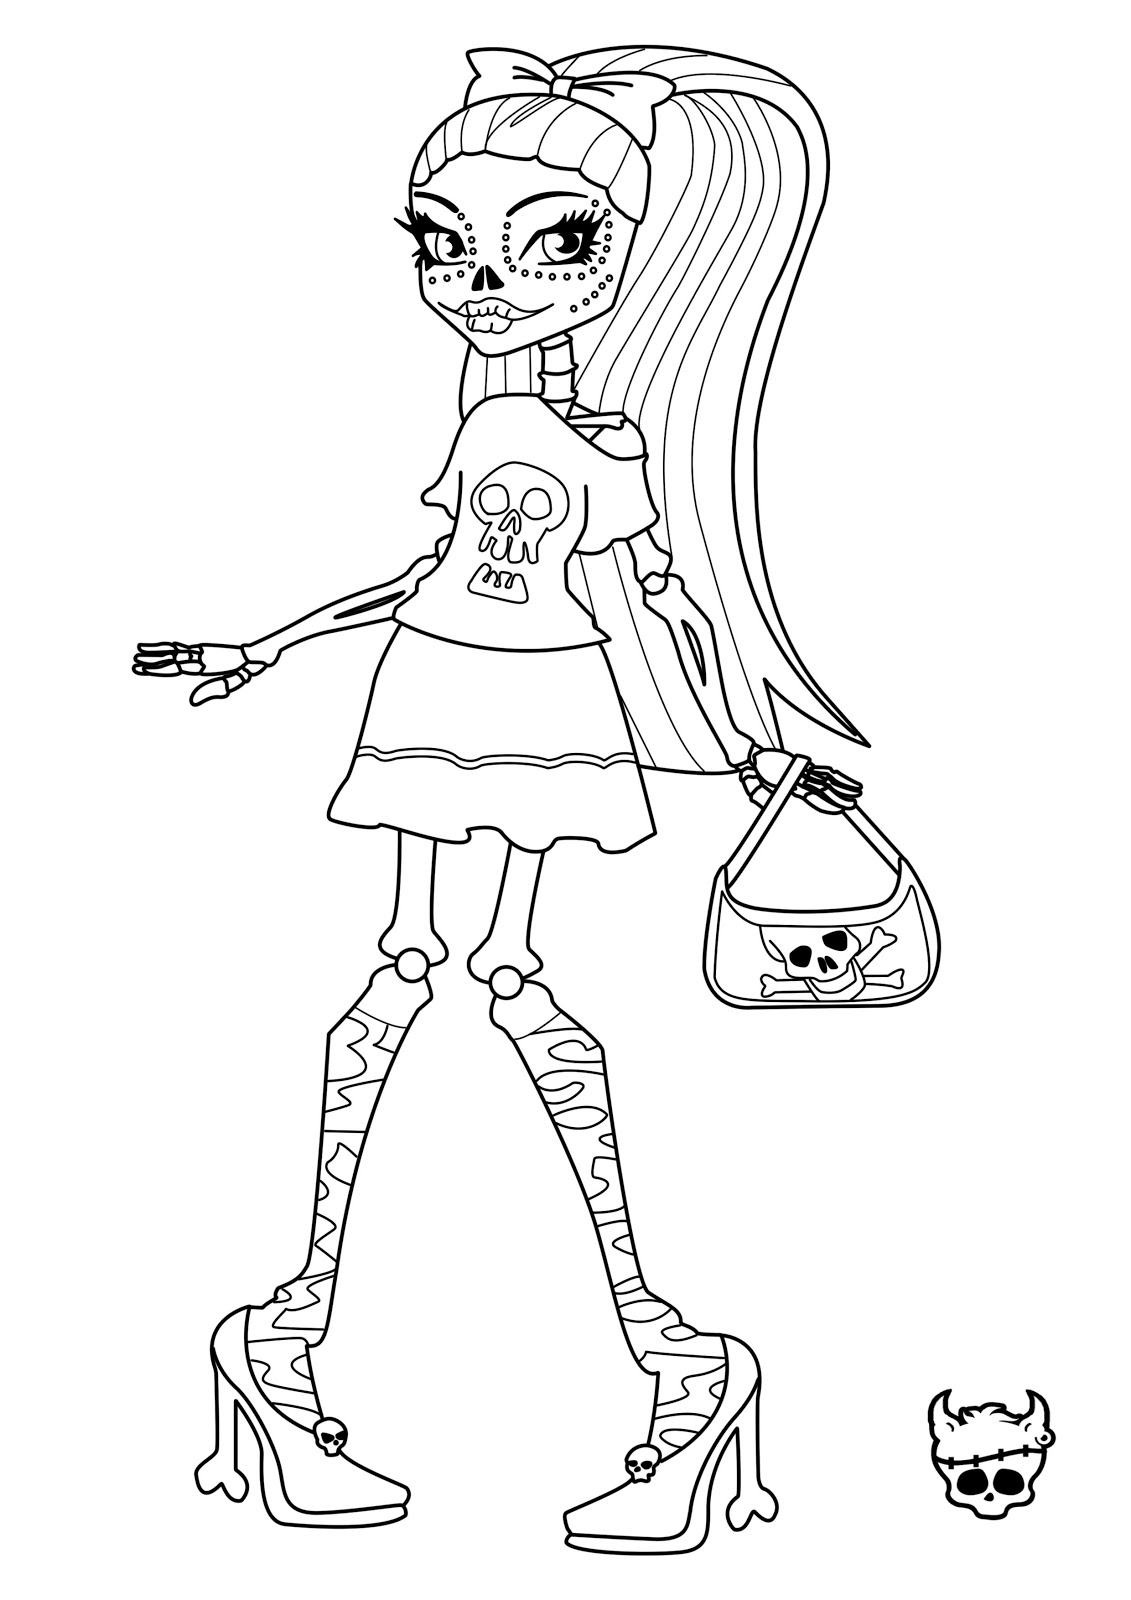 monster high free printable coloring pages monster high coloring pages draculaura coloring pages coloring monster pages high printable free